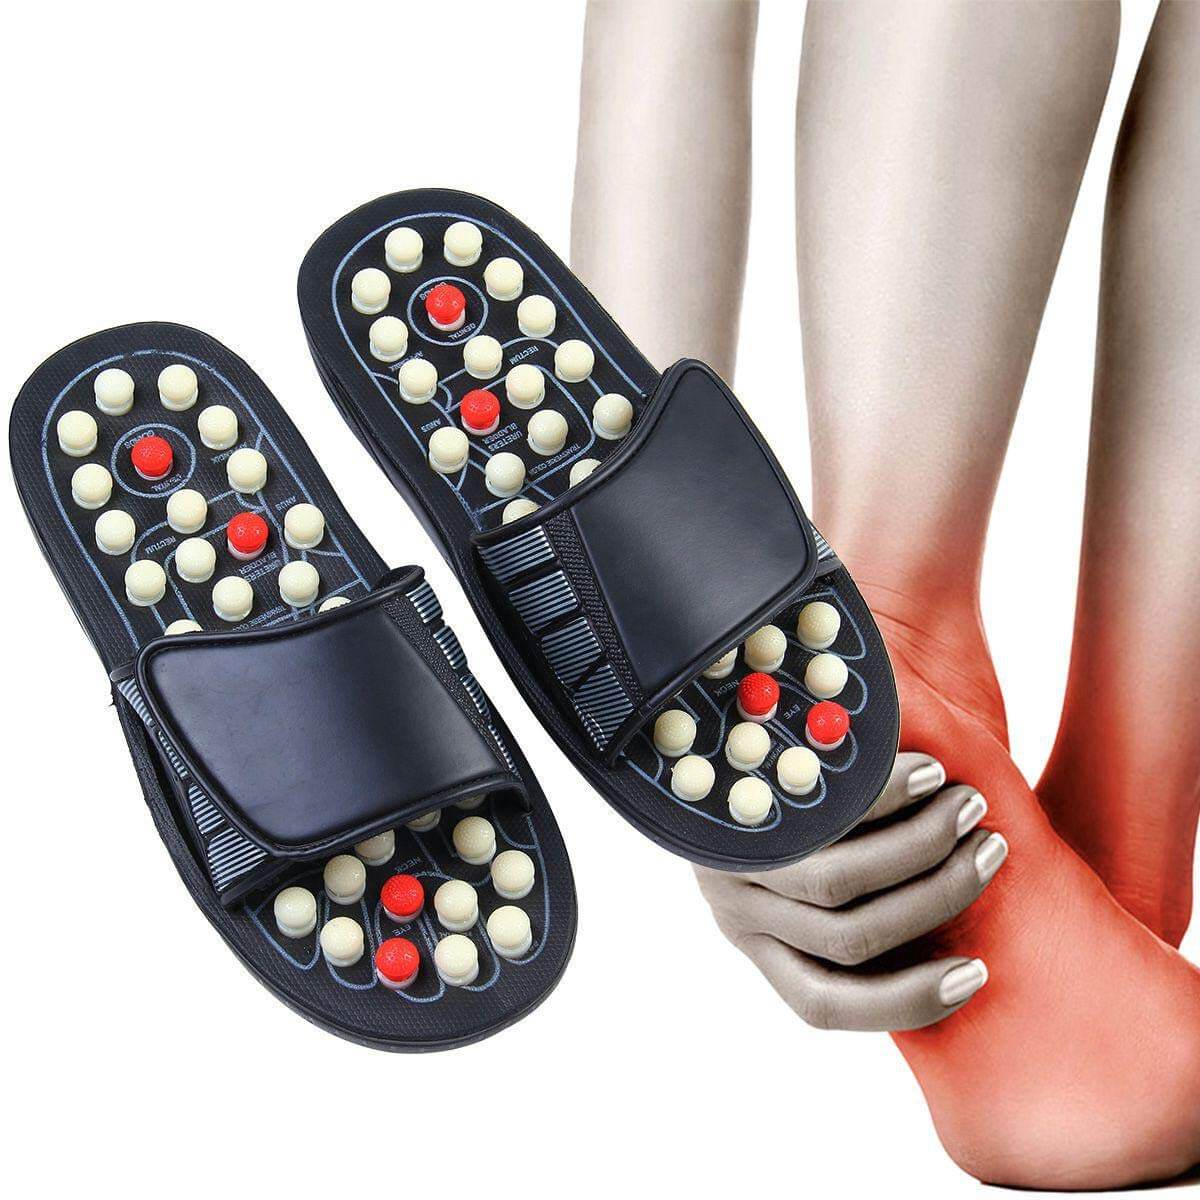 Acupressure Reflexology Foot Massage Slippers